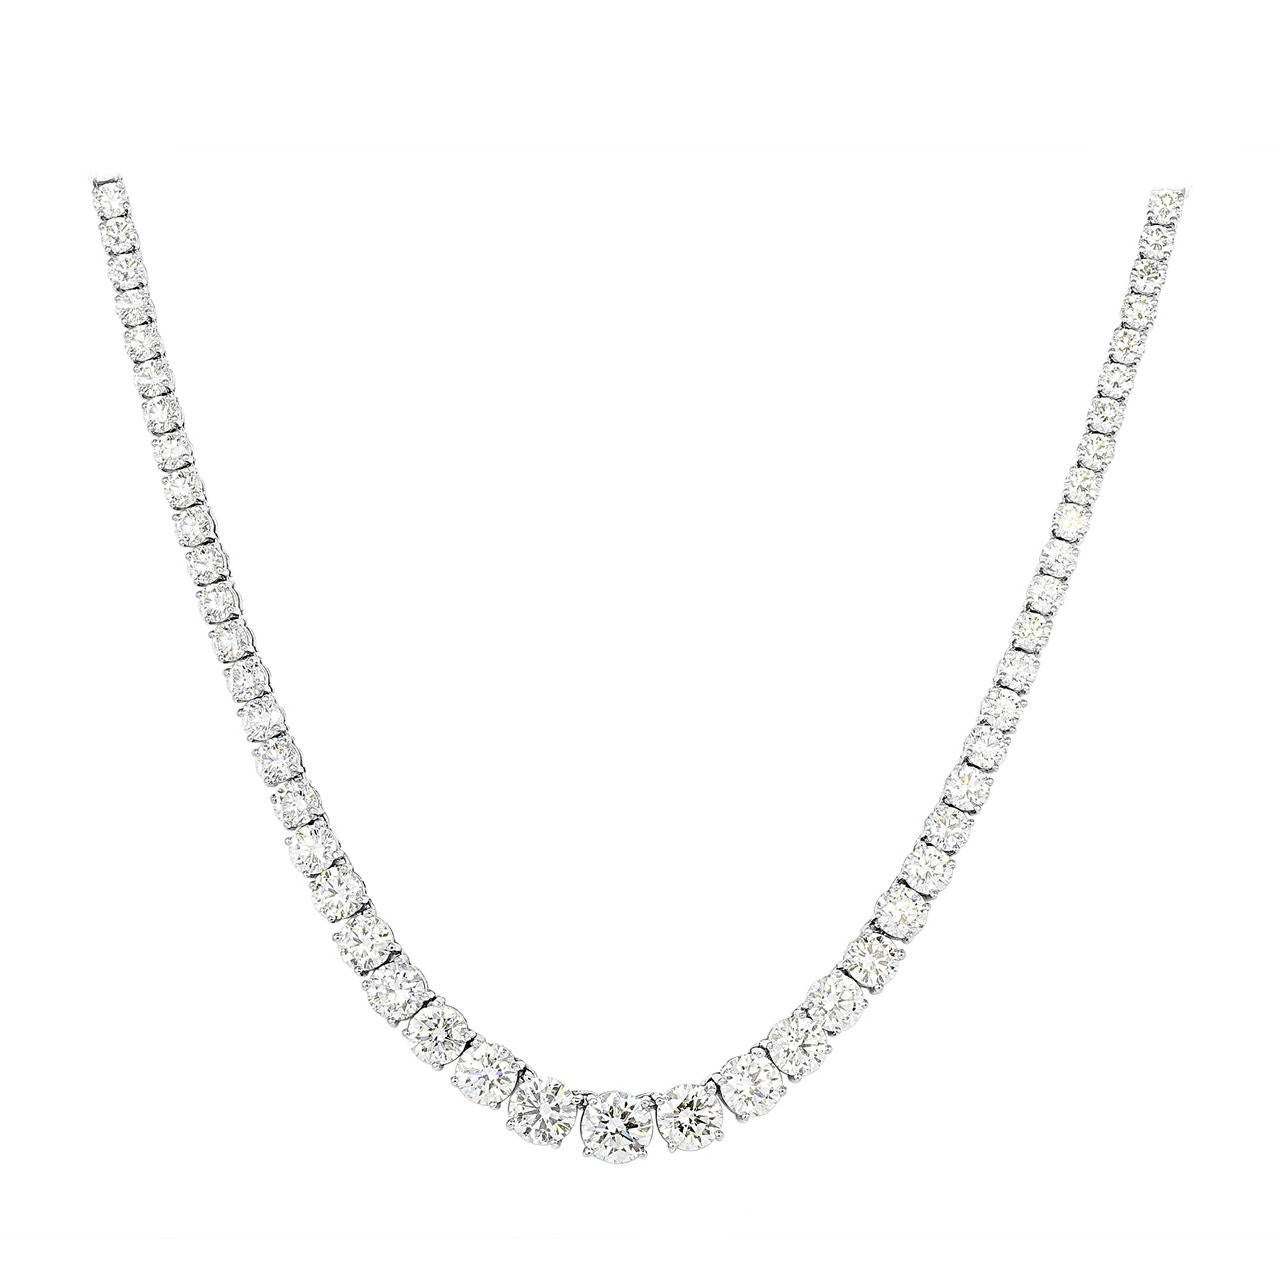 36.75 Carat Diamond Riviere Platinum Necklace